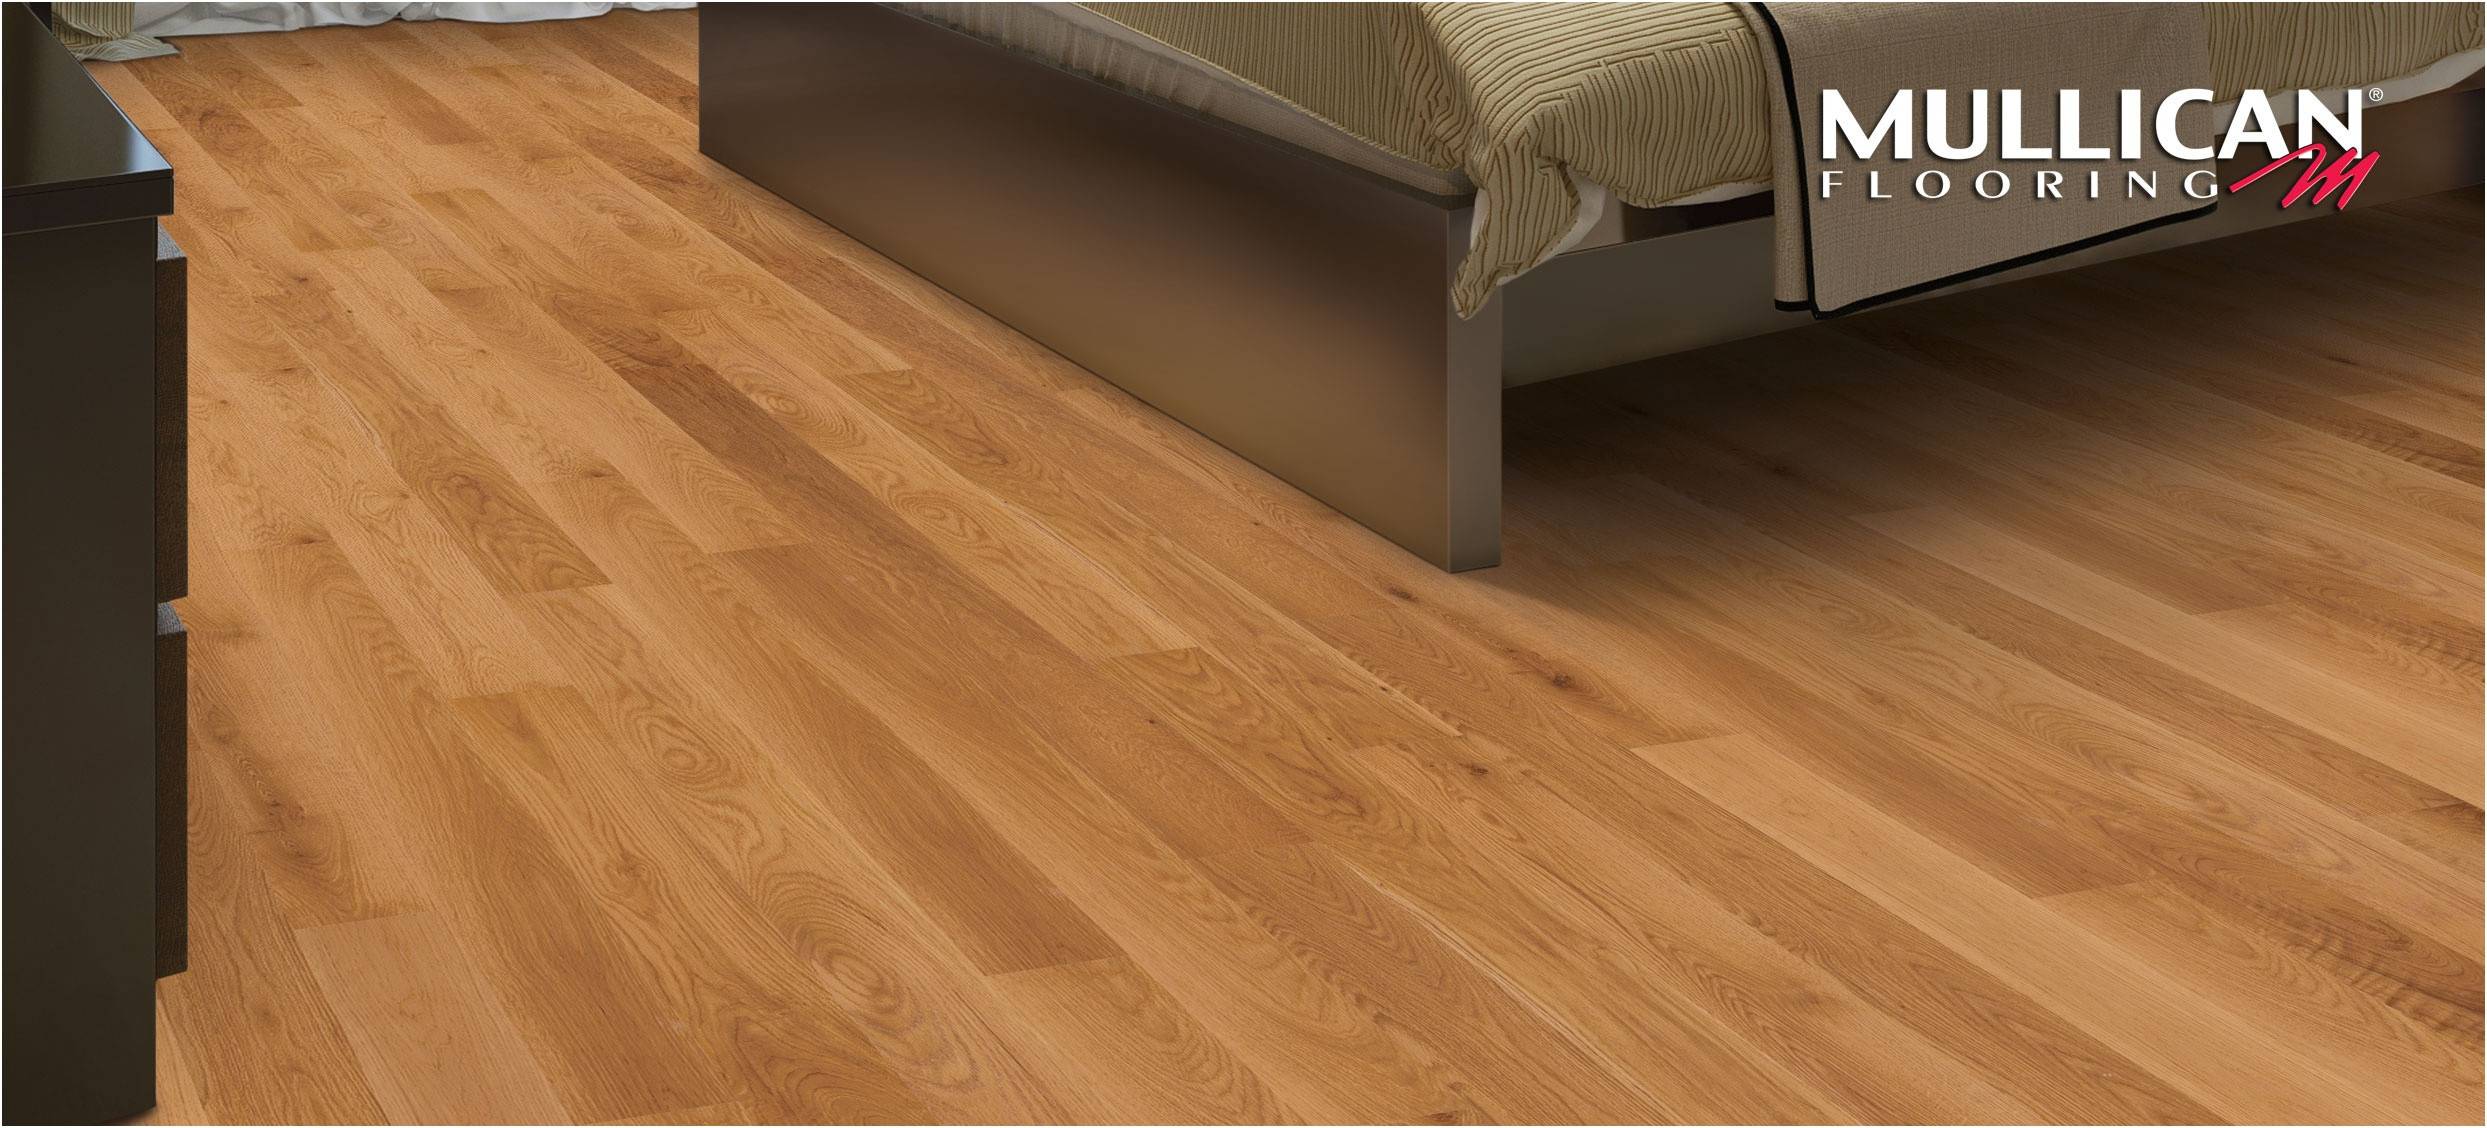 hardwood flooring stores near me of wood floor stores near me 50 elegant tile to wood floor transition within wood floor stores near me wood flooring stores near me galerie hardwood flooring stores near